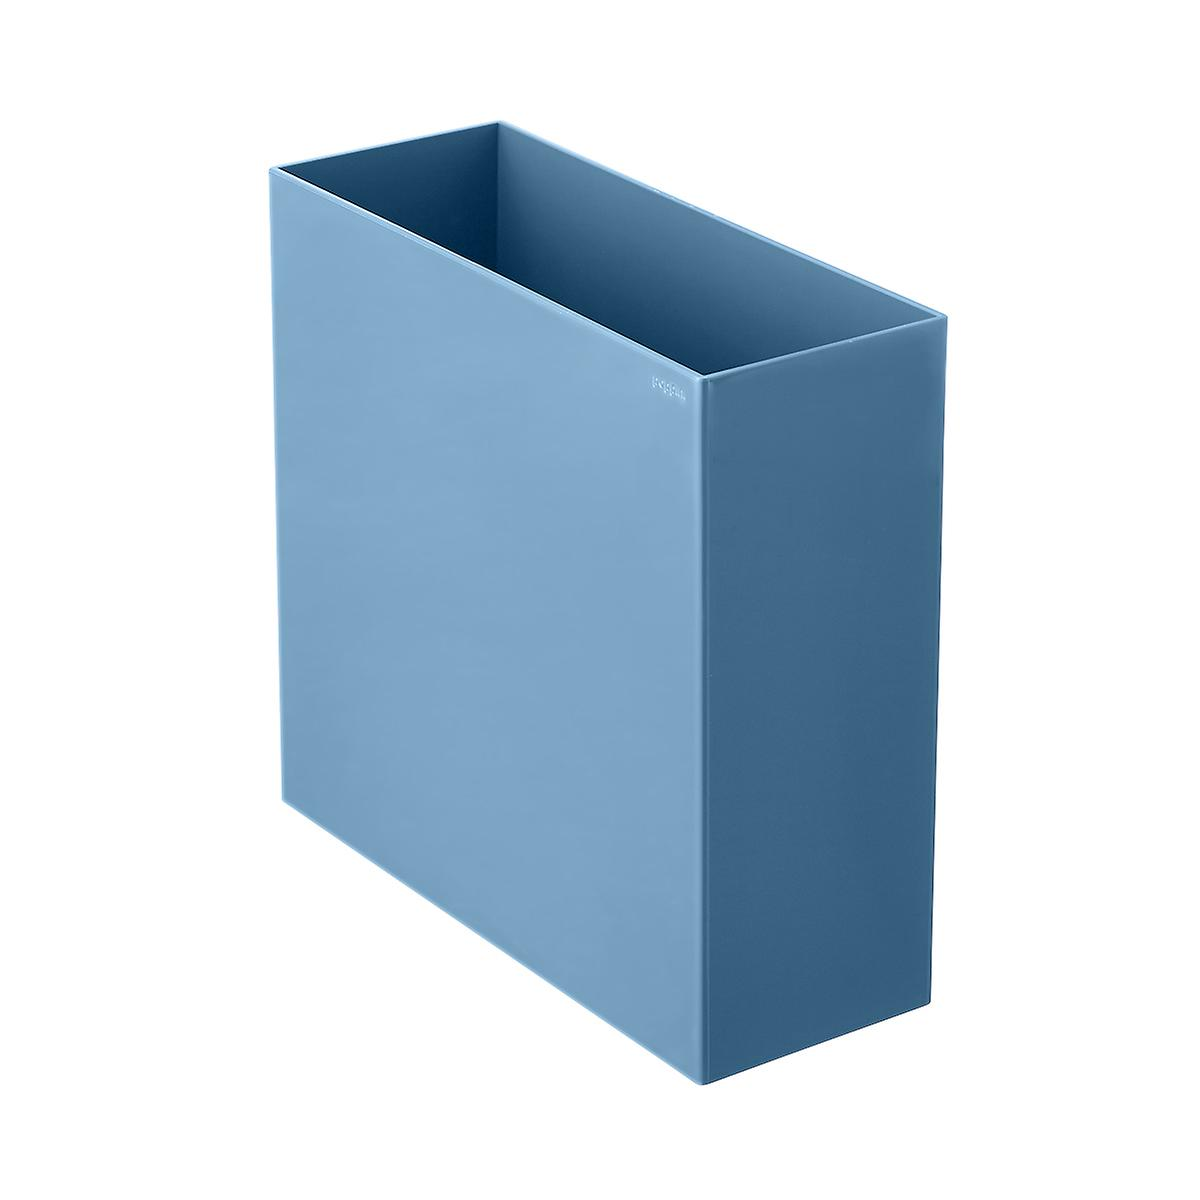 Slate Blue Poppin Hanging File Box